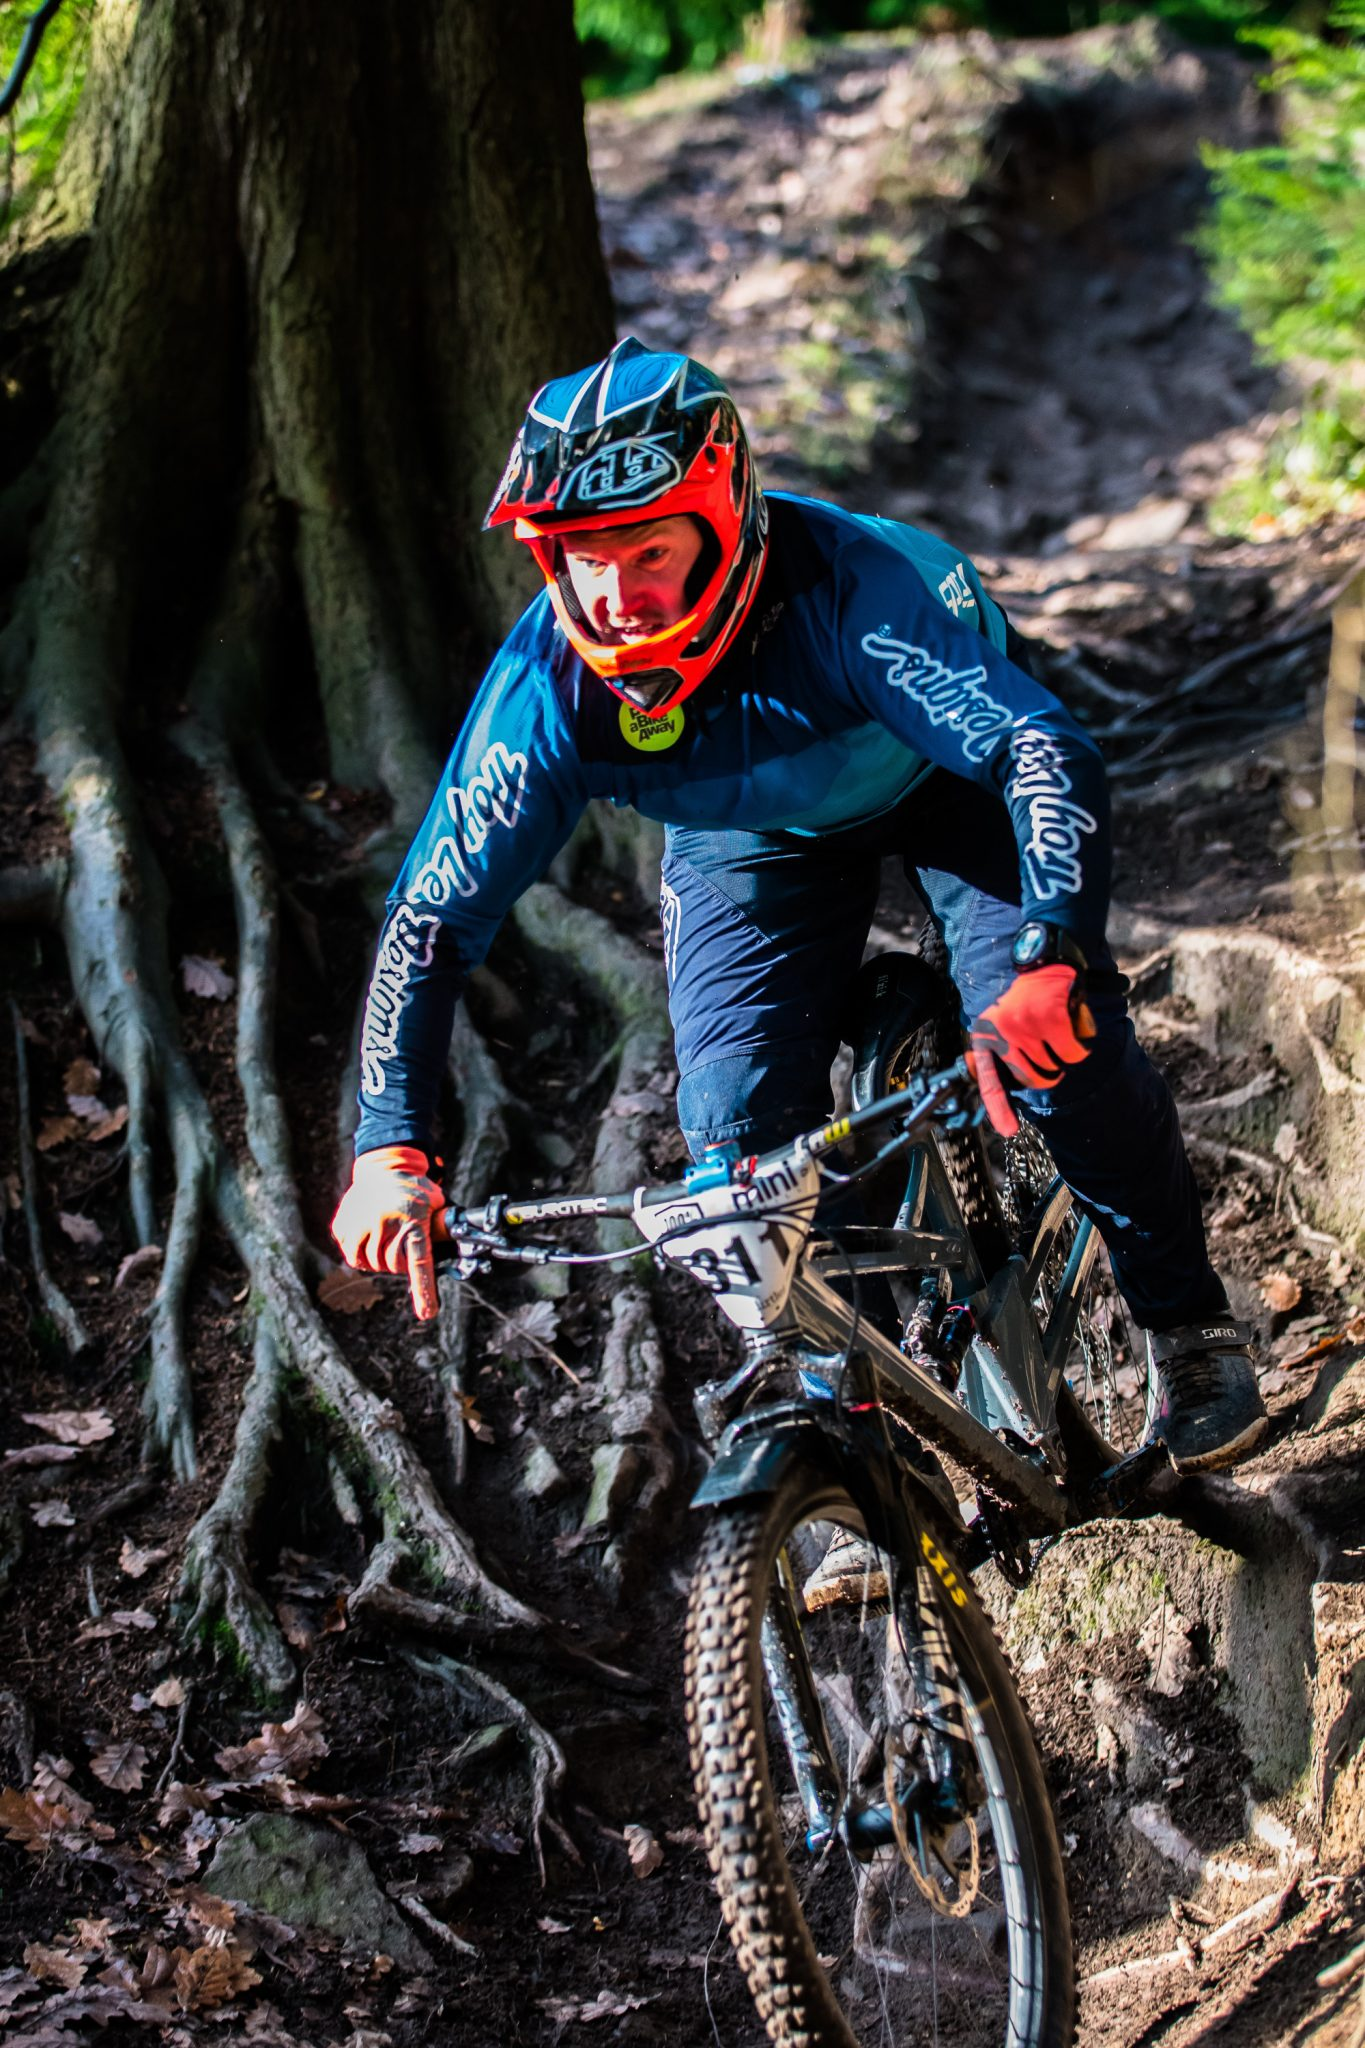 Crankbrothers, MTB racing forest of dean, MTB skills, MTB coaching, Wales, MTB skills, coaching sessions